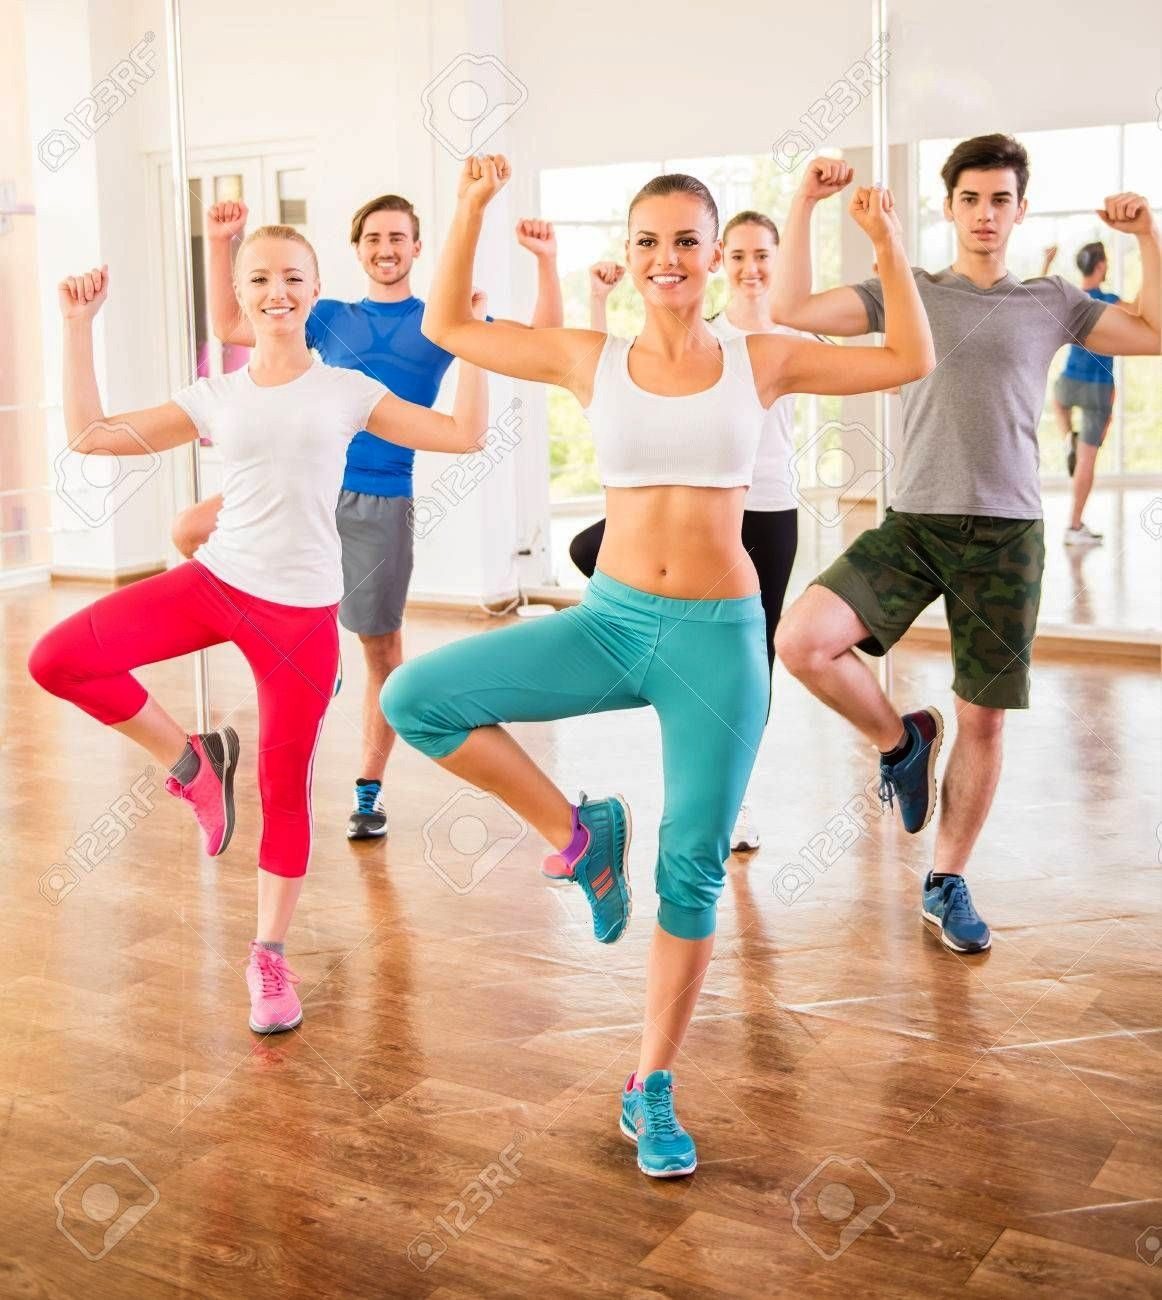 dance studio class Group of people are exercising in dance studio Fitness dance studio class Group of people are exercising in dance studio  Country Heat is so fun and si...